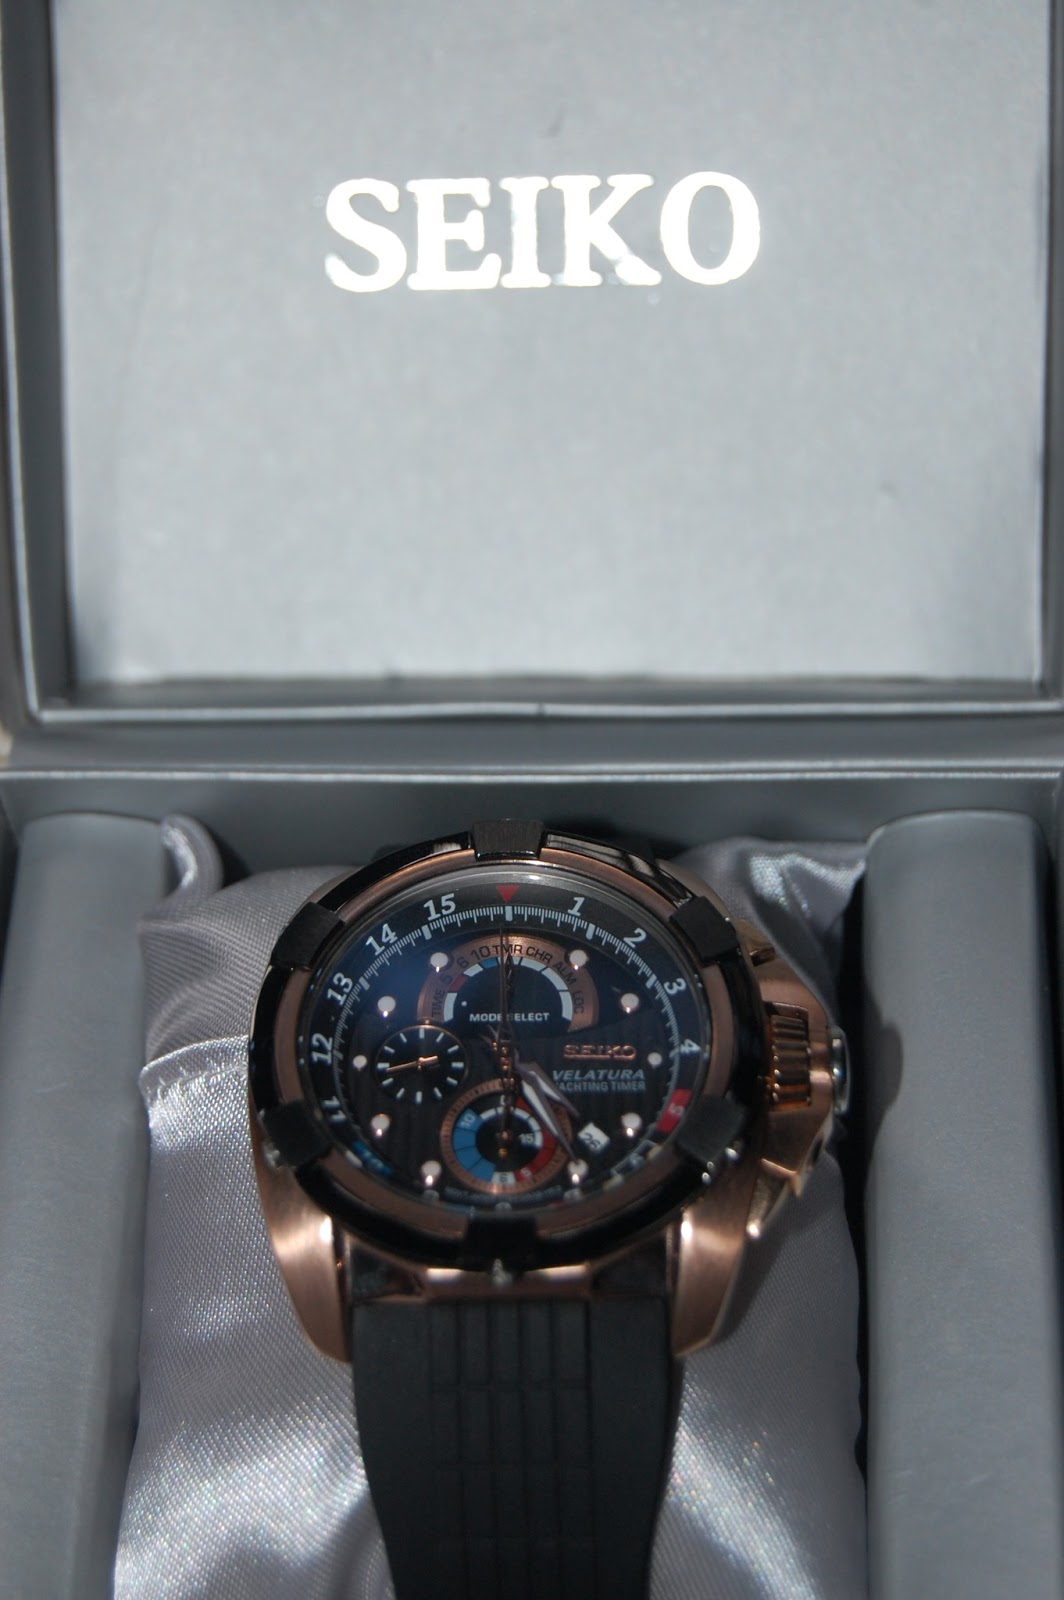 Hasyim Smart Watch March 2013 Casio Edifice Efr 538d 1av Saturday 23